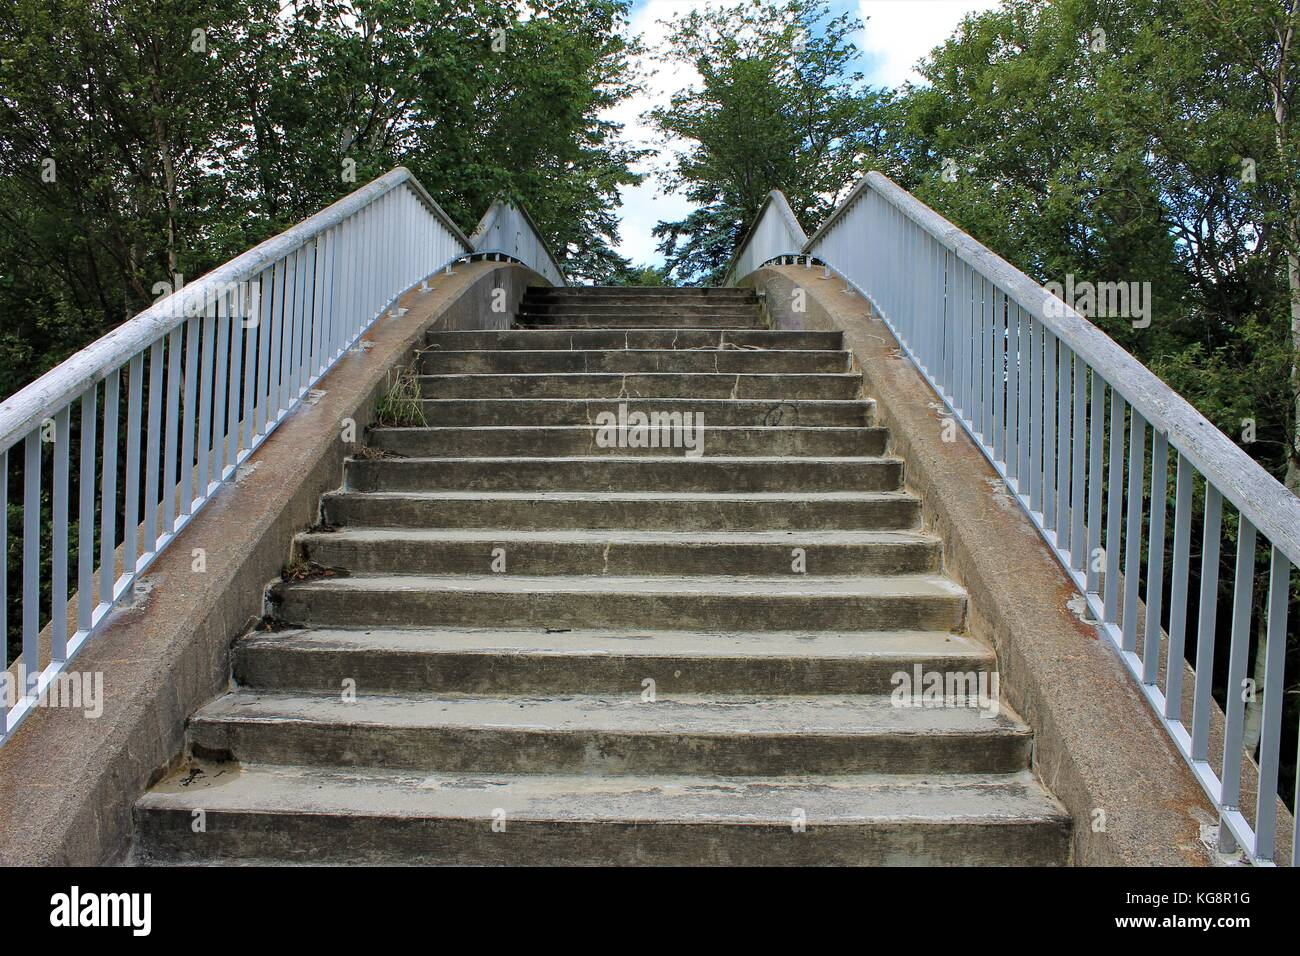 Cantilever Stairs Stock Photos & Cantilever Stairs Stock